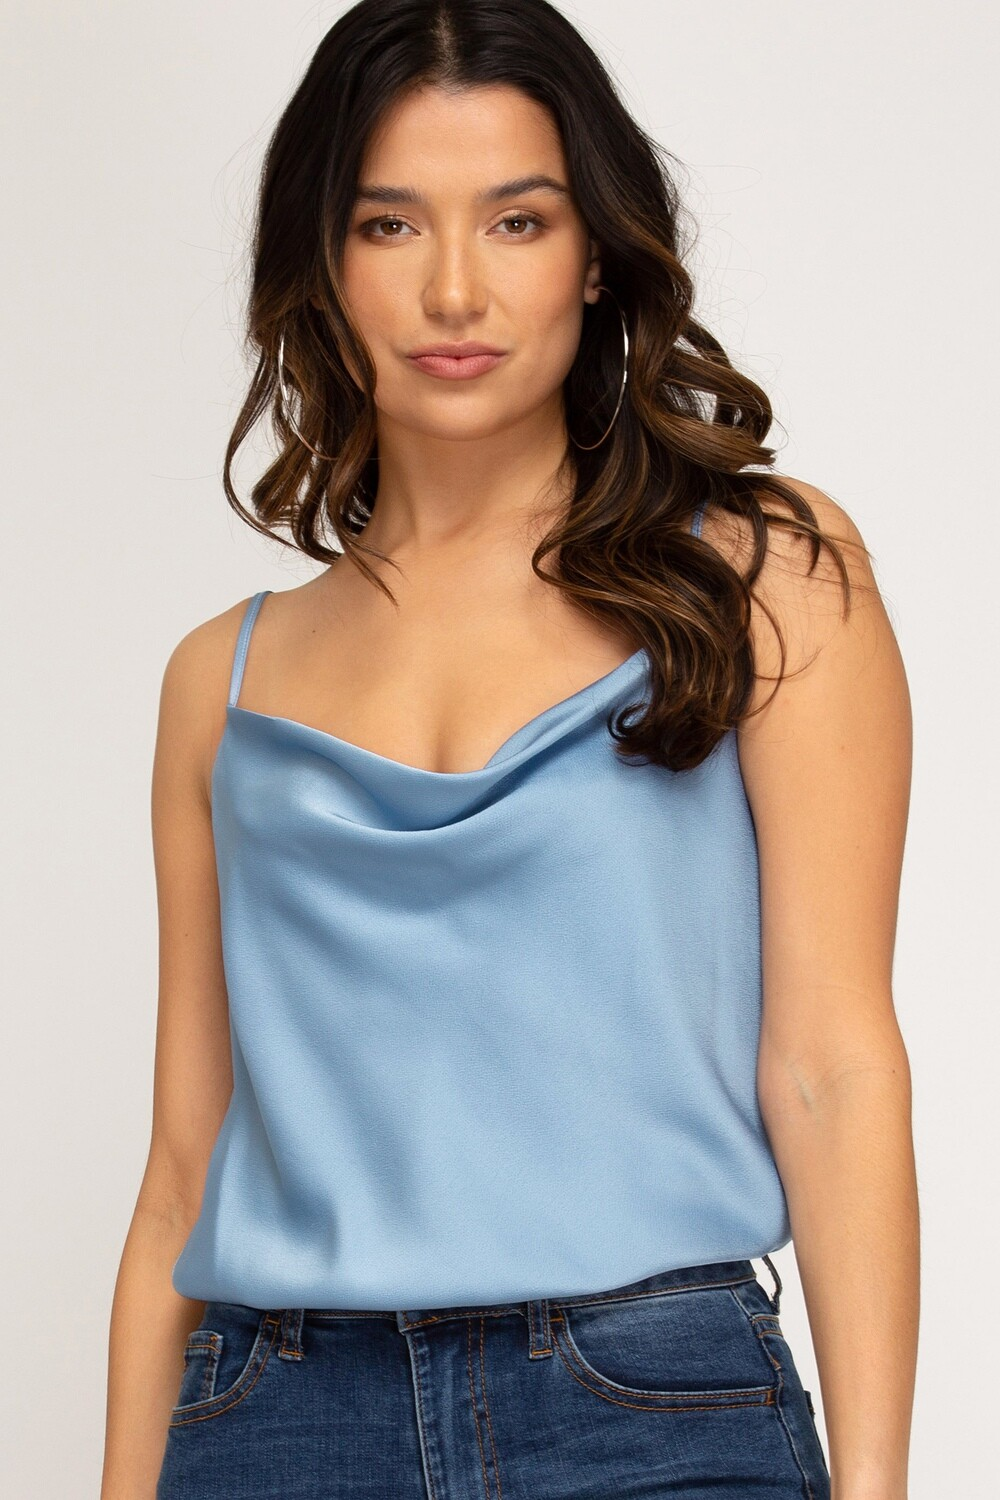 She and Sky: Blue Cami Bodysuit